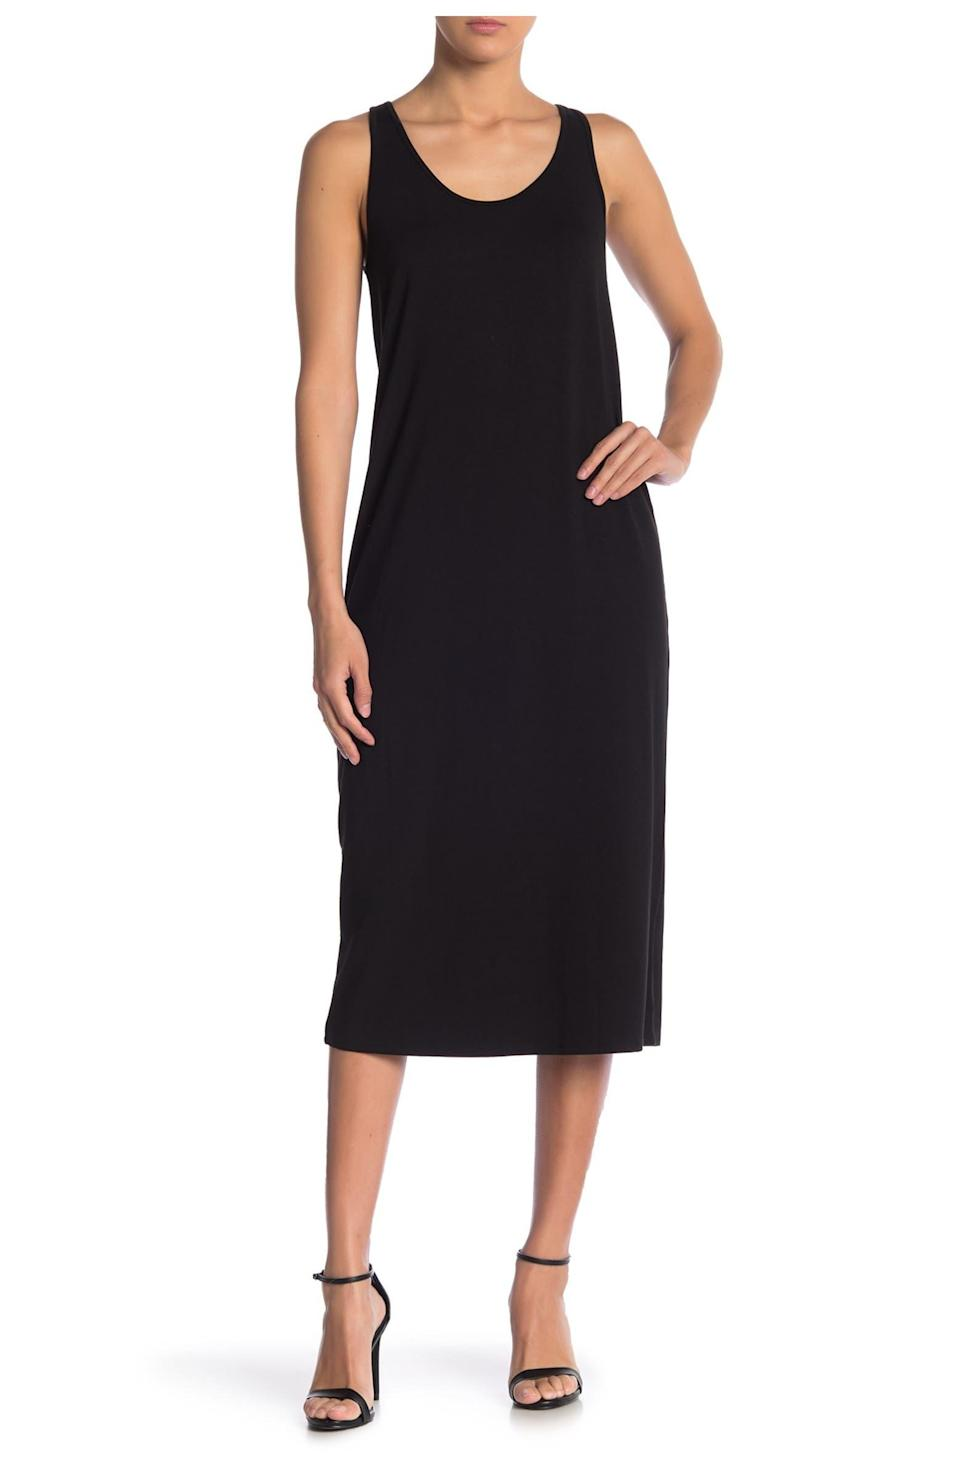 """<h2>Philosophy Cashmere Midi Tank Dress</h2><br>You really can't go wrong with a simple black tank dress — especially one that's always under $20. This style has hundreds of glowing reviews from shoppers who are all about its versatility and non-clingy fit. <br><br><strong>The Hype:</strong> 4.4 out of 5 stars; 342 reviews on NordstromRack.com<br><strong><br>What They're Saying:</strong> """"The sale price may give you pause, but you'd be missing out, I cannot believe how perfect this dress is for summer fun! I usually only wear the color black, but I bought four out of six colors. The fabric has body so that it drapes and doesn't cling. The scoop neck is in the right position for someone who doesn't want too much cleavage showing. A perfect day to evening dress."""" — nodiva, NordstromRack.com reviewer<br><br><strong>Philosophy Cashmere</strong> Scoop Neck Midi Tank Dress, $, available at <a href=""""https://go.skimresources.com/?id=30283X879131&url=https%3A%2F%2Fwww.nordstromrack.com%2Fs%2Fphilosophy-cashmere-scoop-neck-midi-tank-dress%2F6044409"""" rel=""""nofollow noopener"""" target=""""_blank"""" data-ylk=""""slk:Nordstrom Rack"""" class=""""link rapid-noclick-resp"""">Nordstrom Rack</a>"""